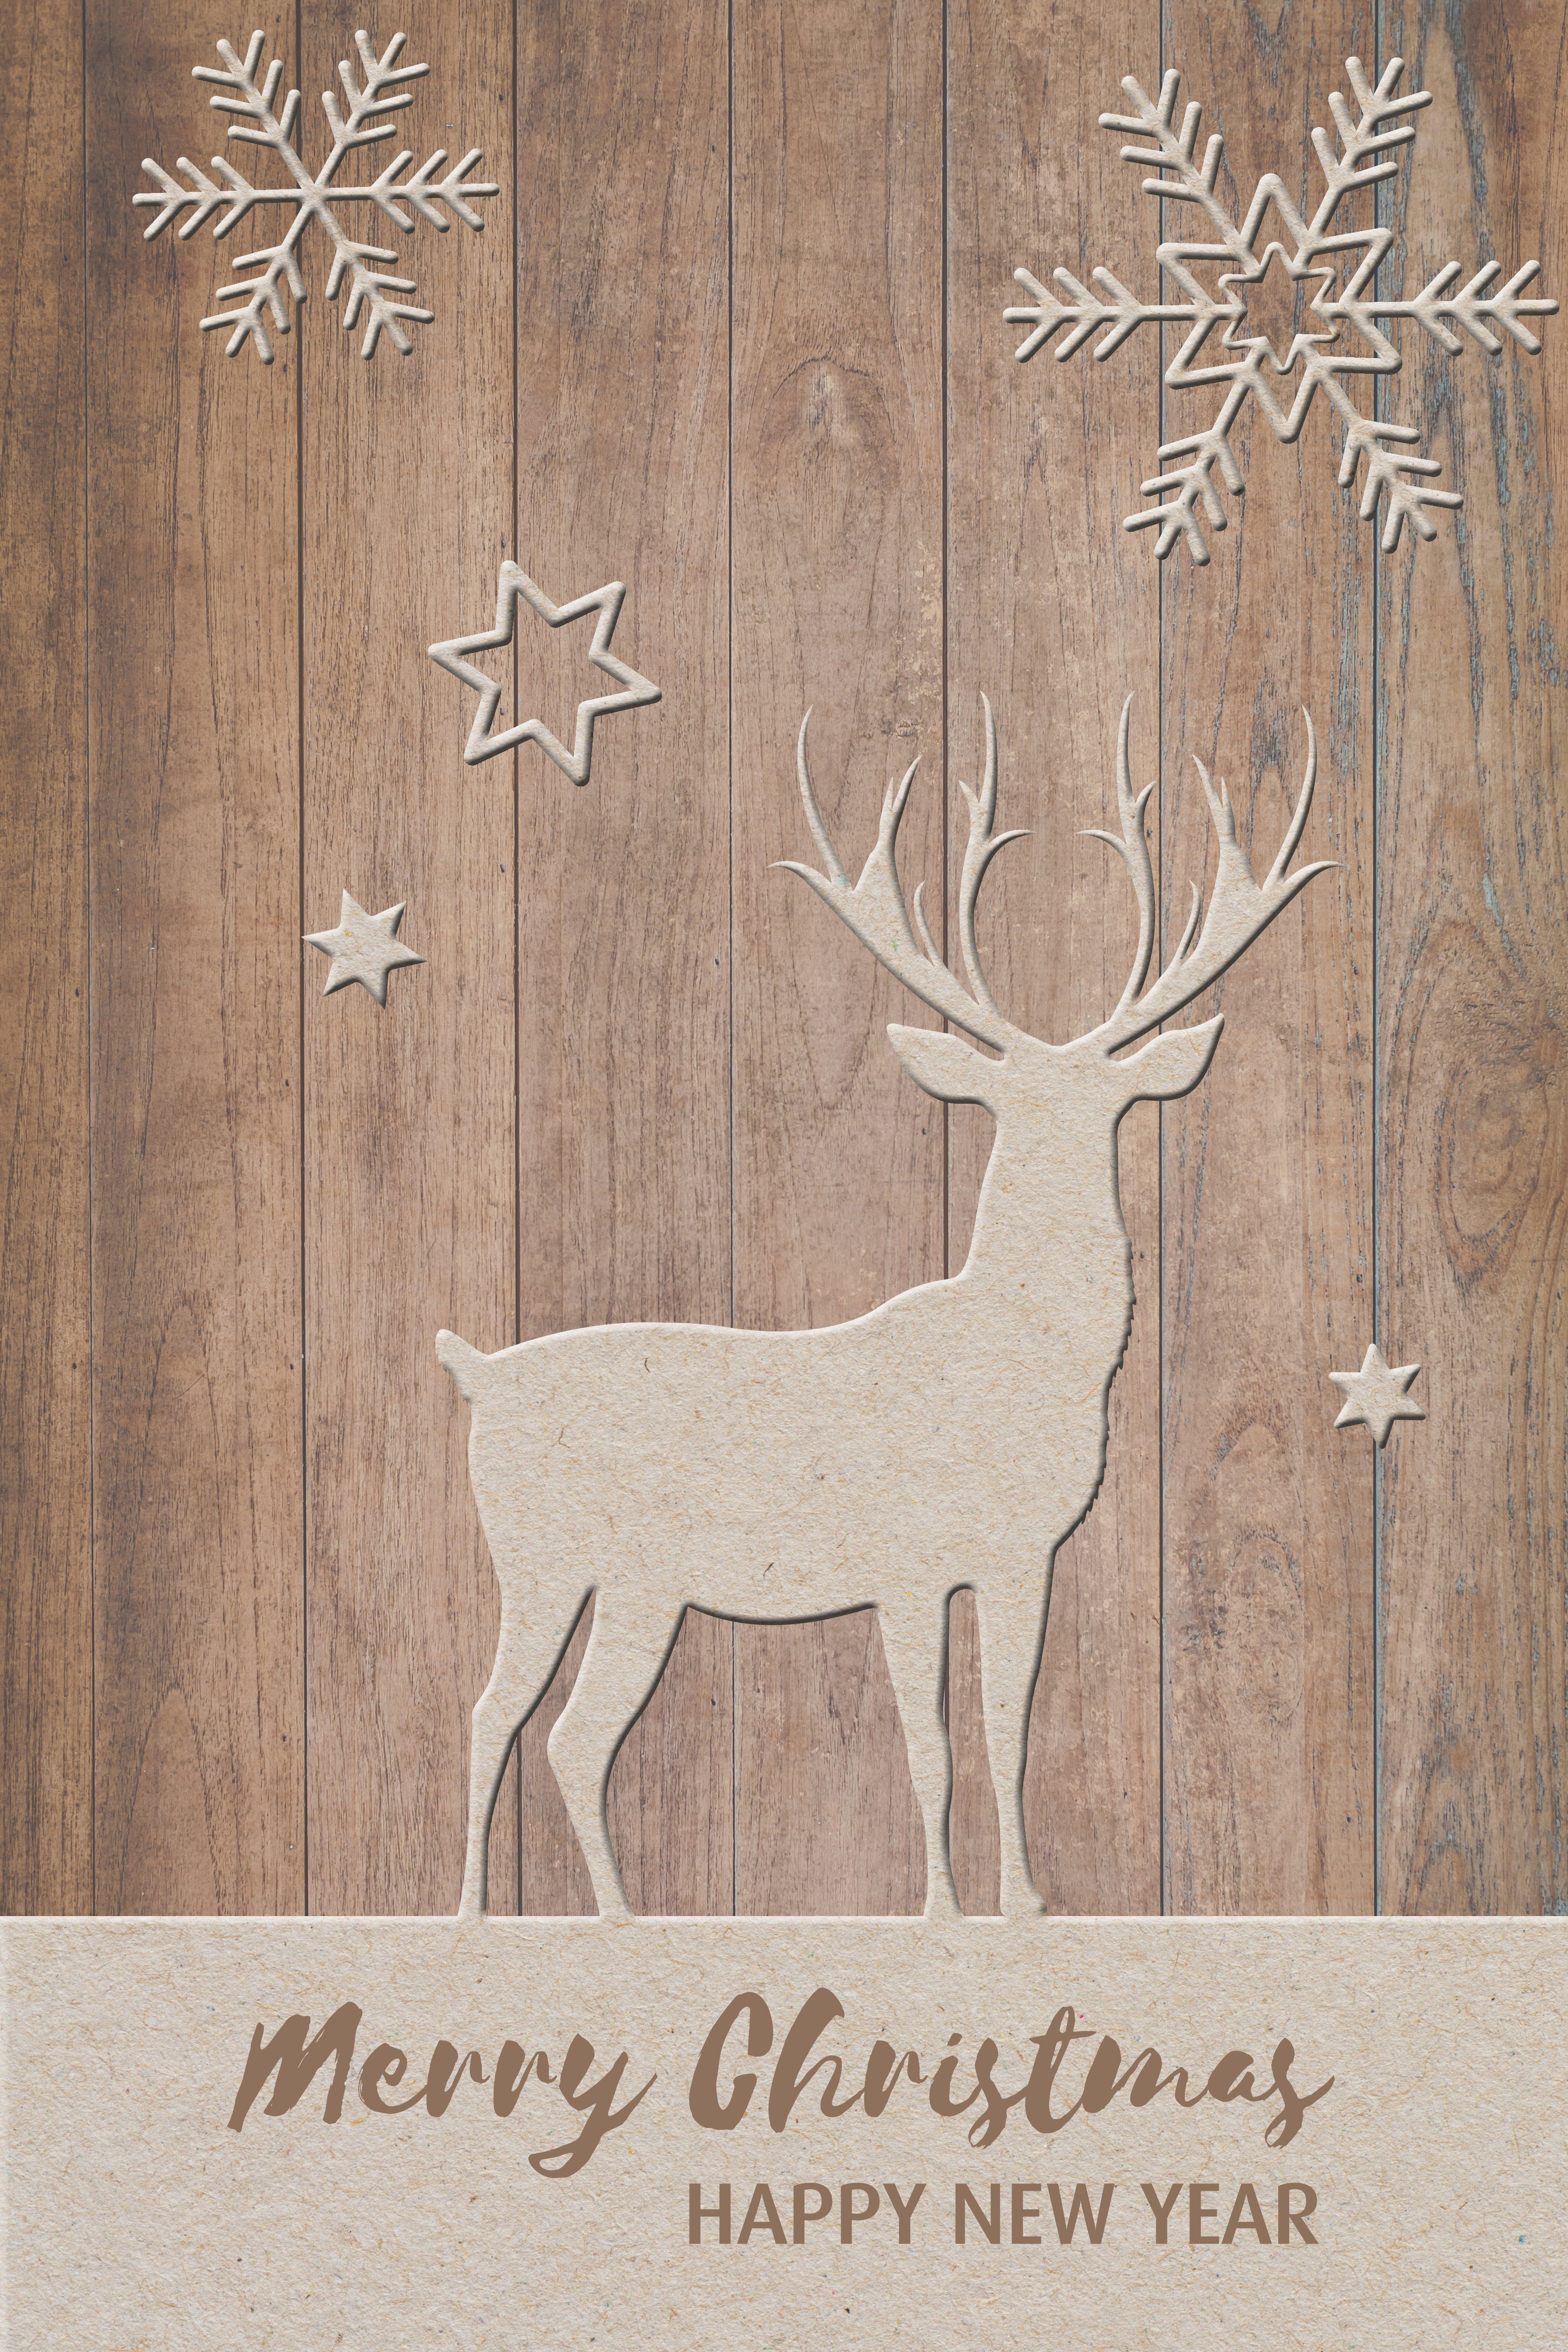 Christmas greeting, deer, snow, festival, fund